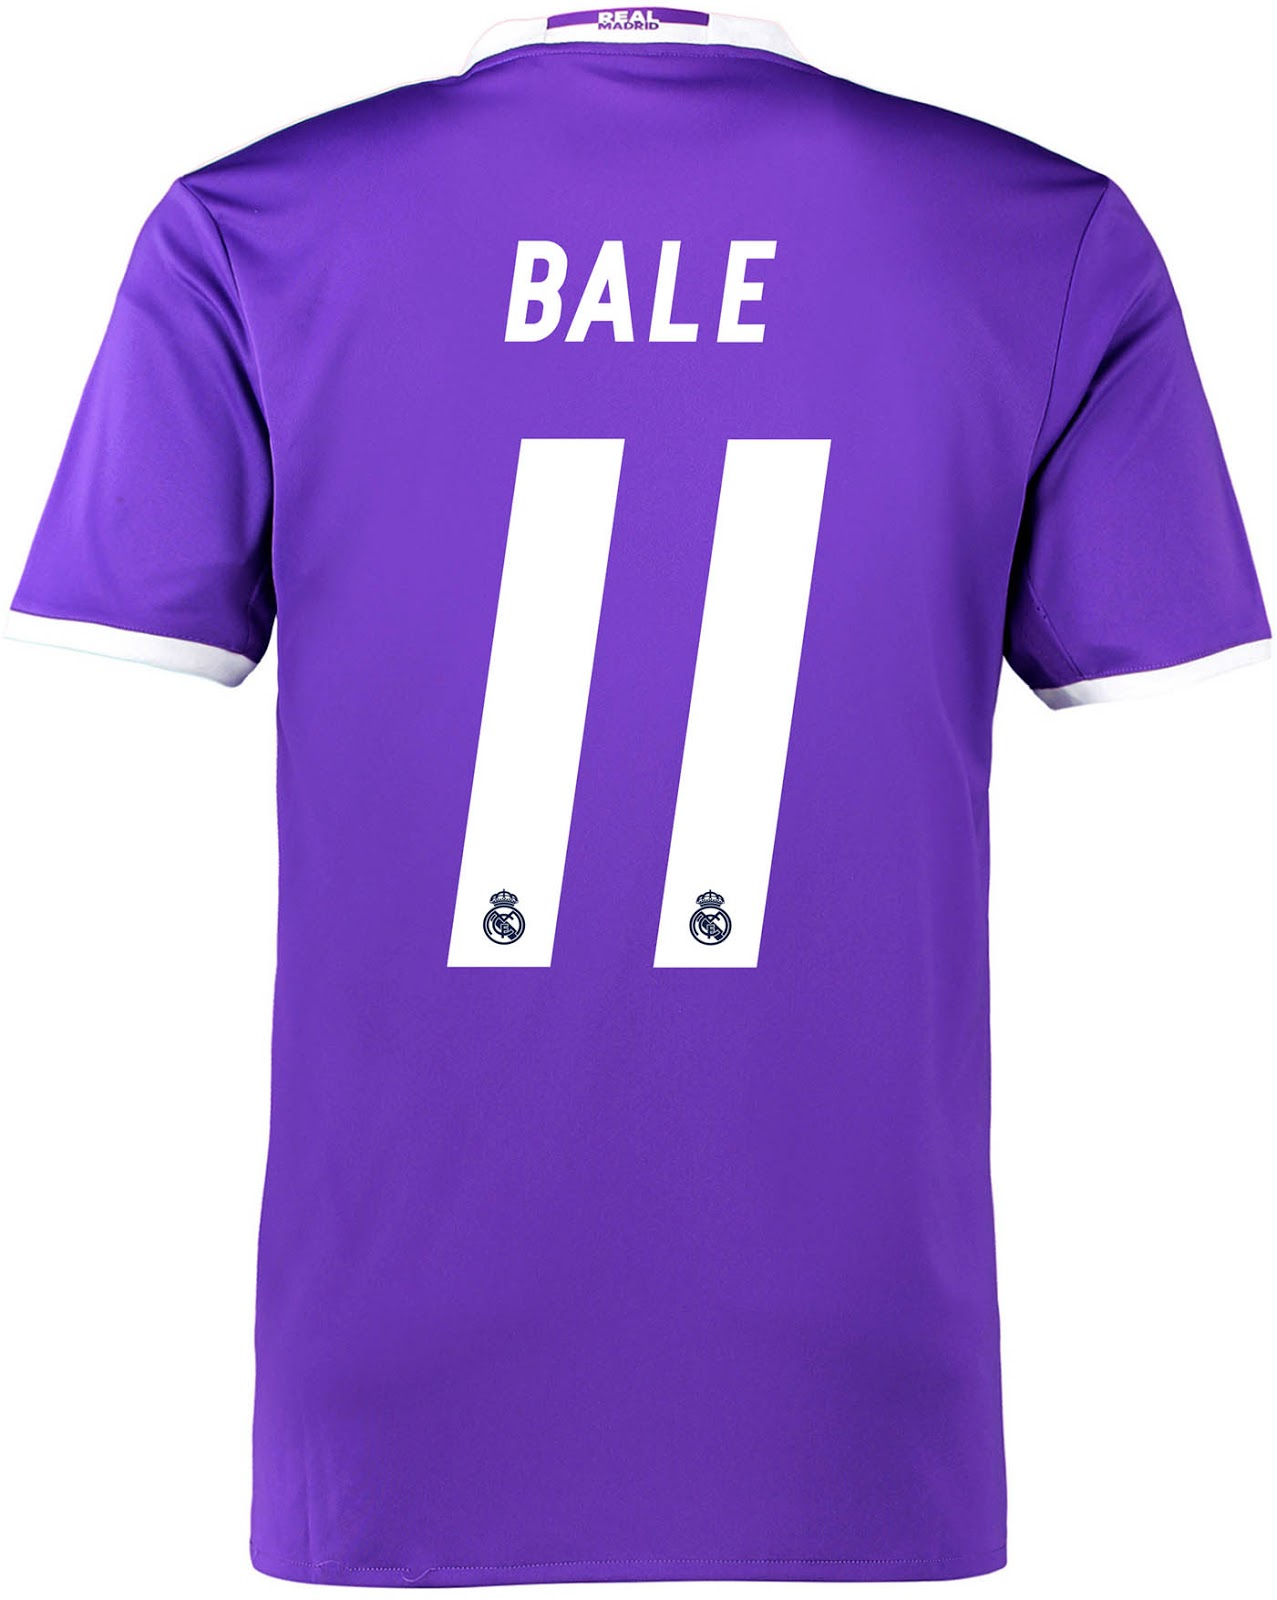 The new Real Madrid font will be worn in all competitions ad97a3ef972c2